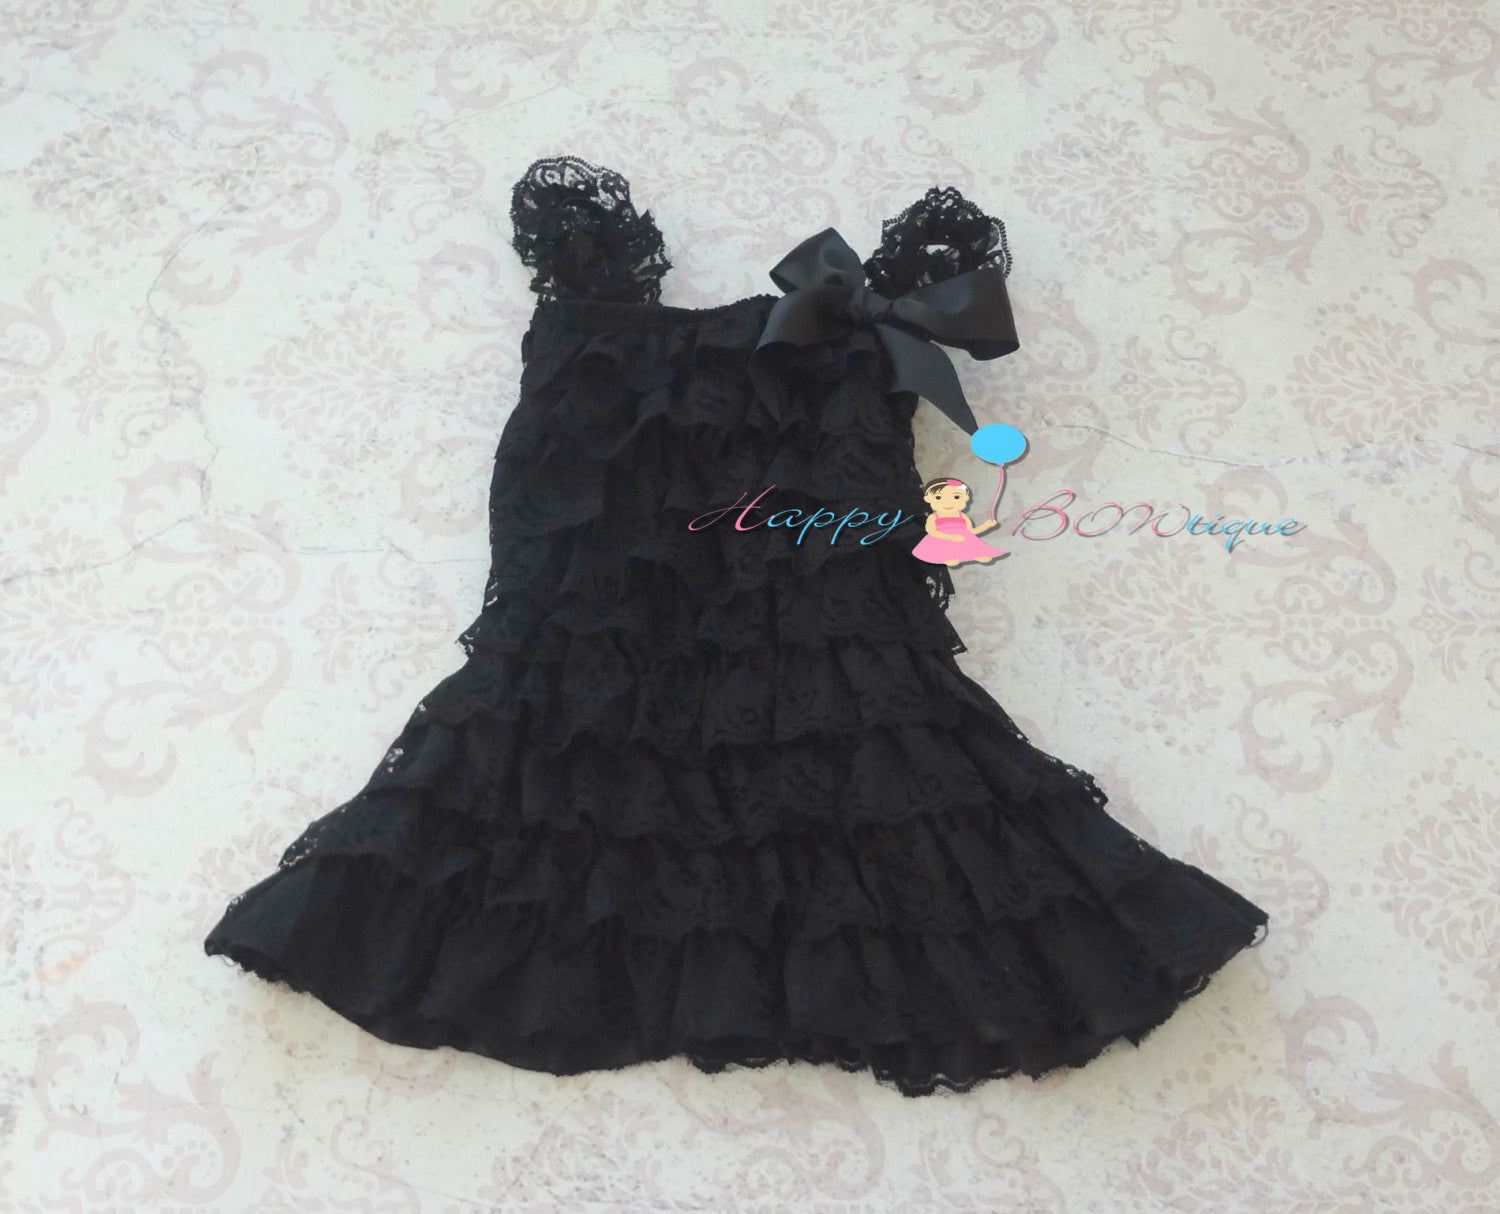 Perfect Black Lace Dress Set - Happy BOWtique - children's clothing, Baby Girl clothing